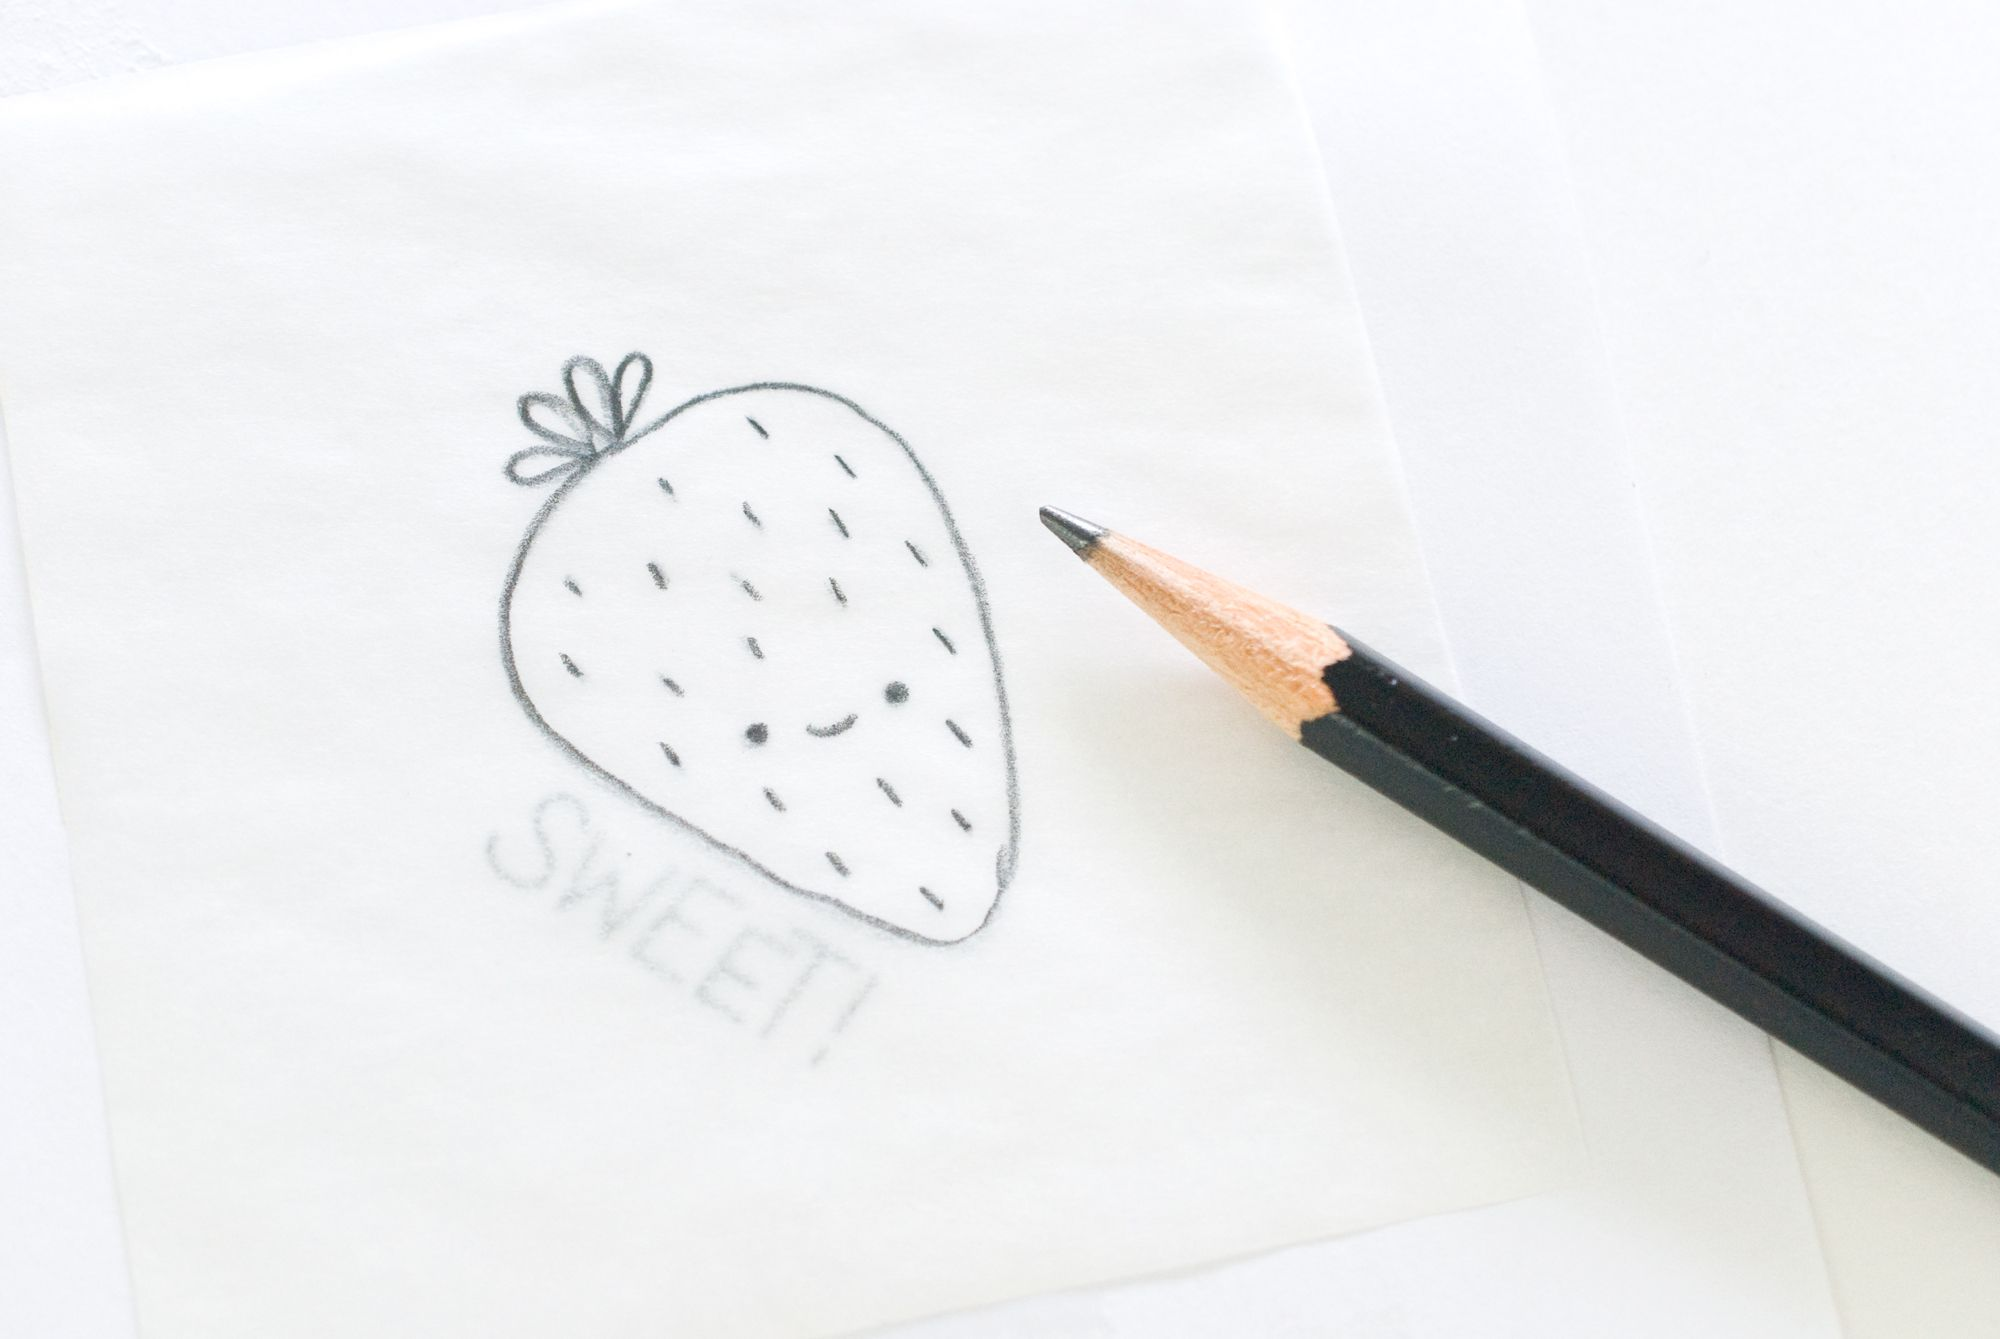 Tracing the pattern with a regular pencil